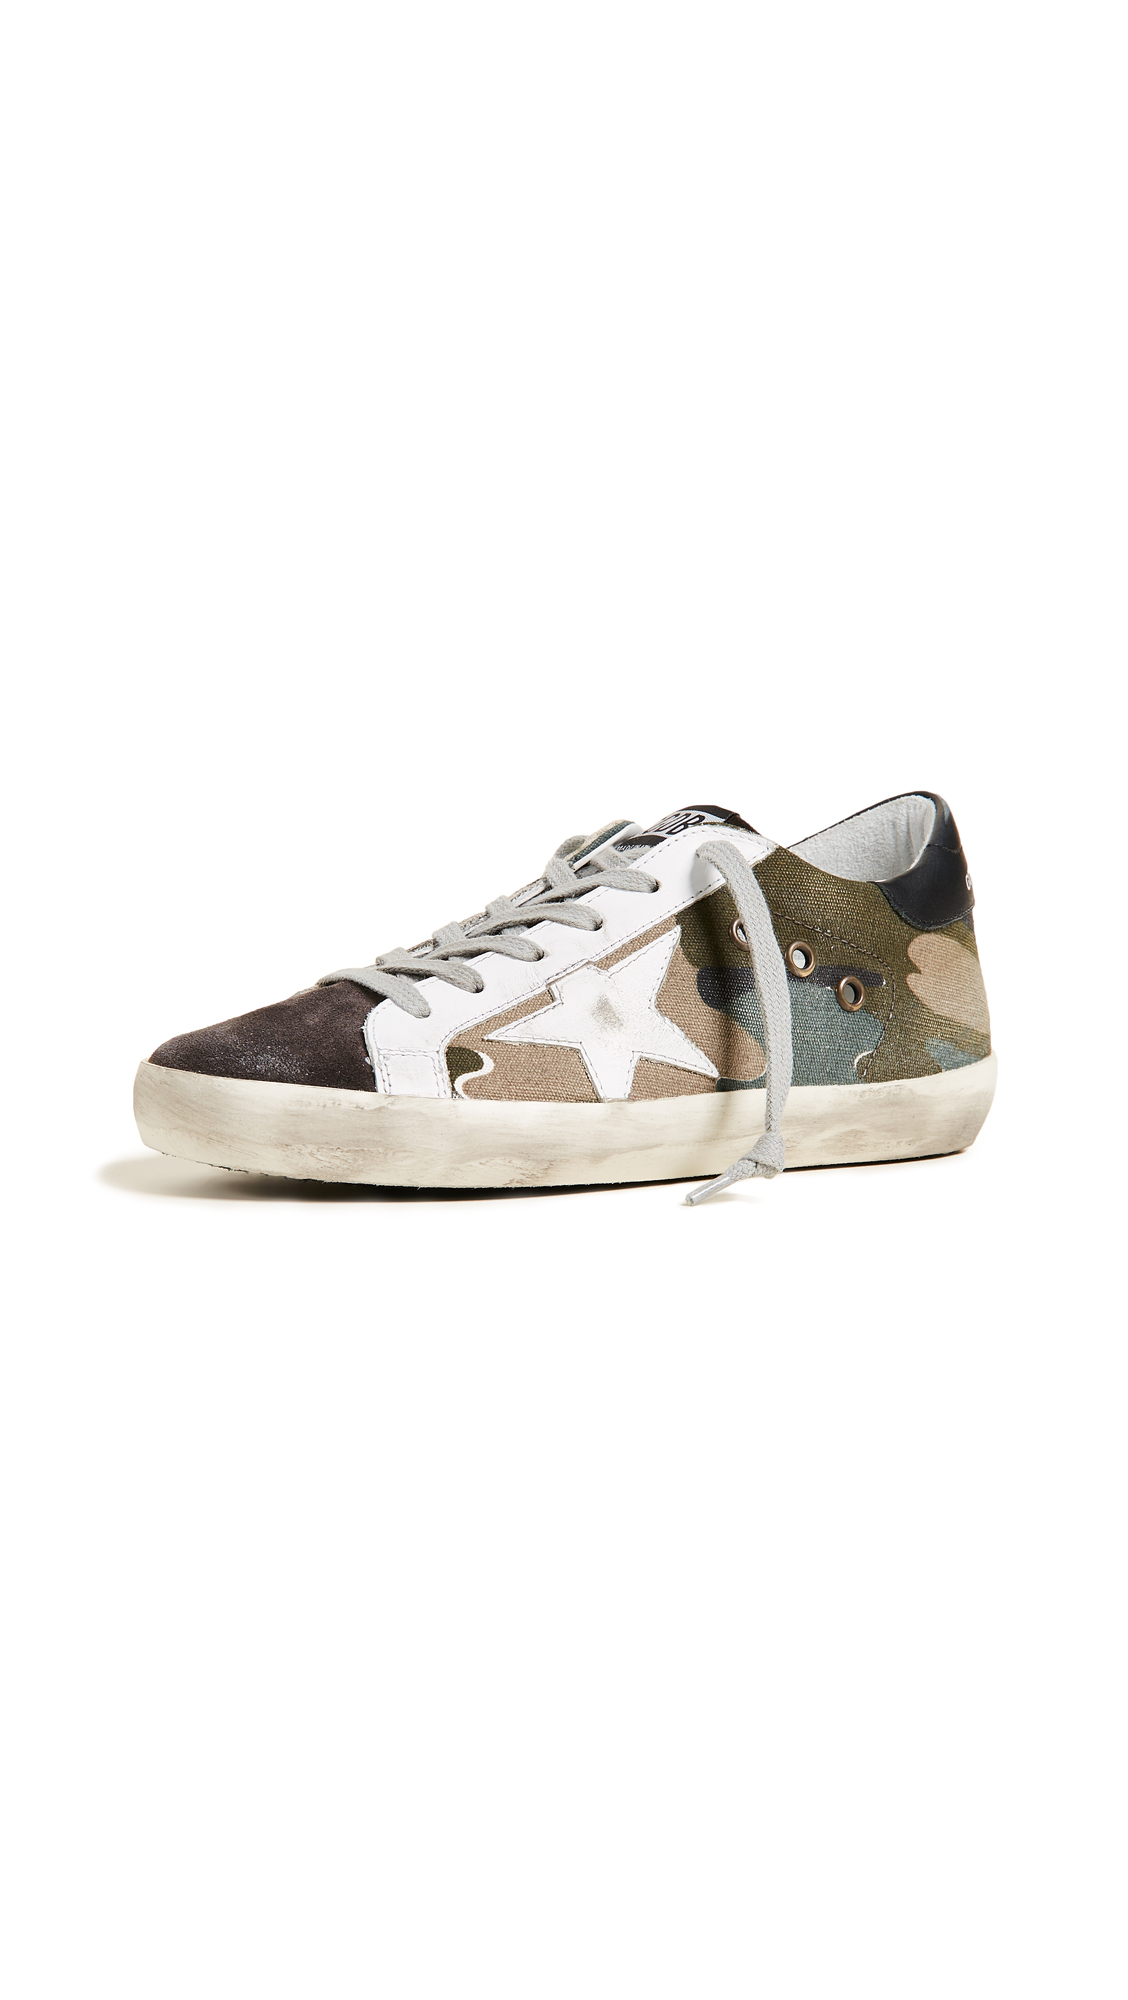 Golden Goose Superstar Sneakers - Camou/Grey/White